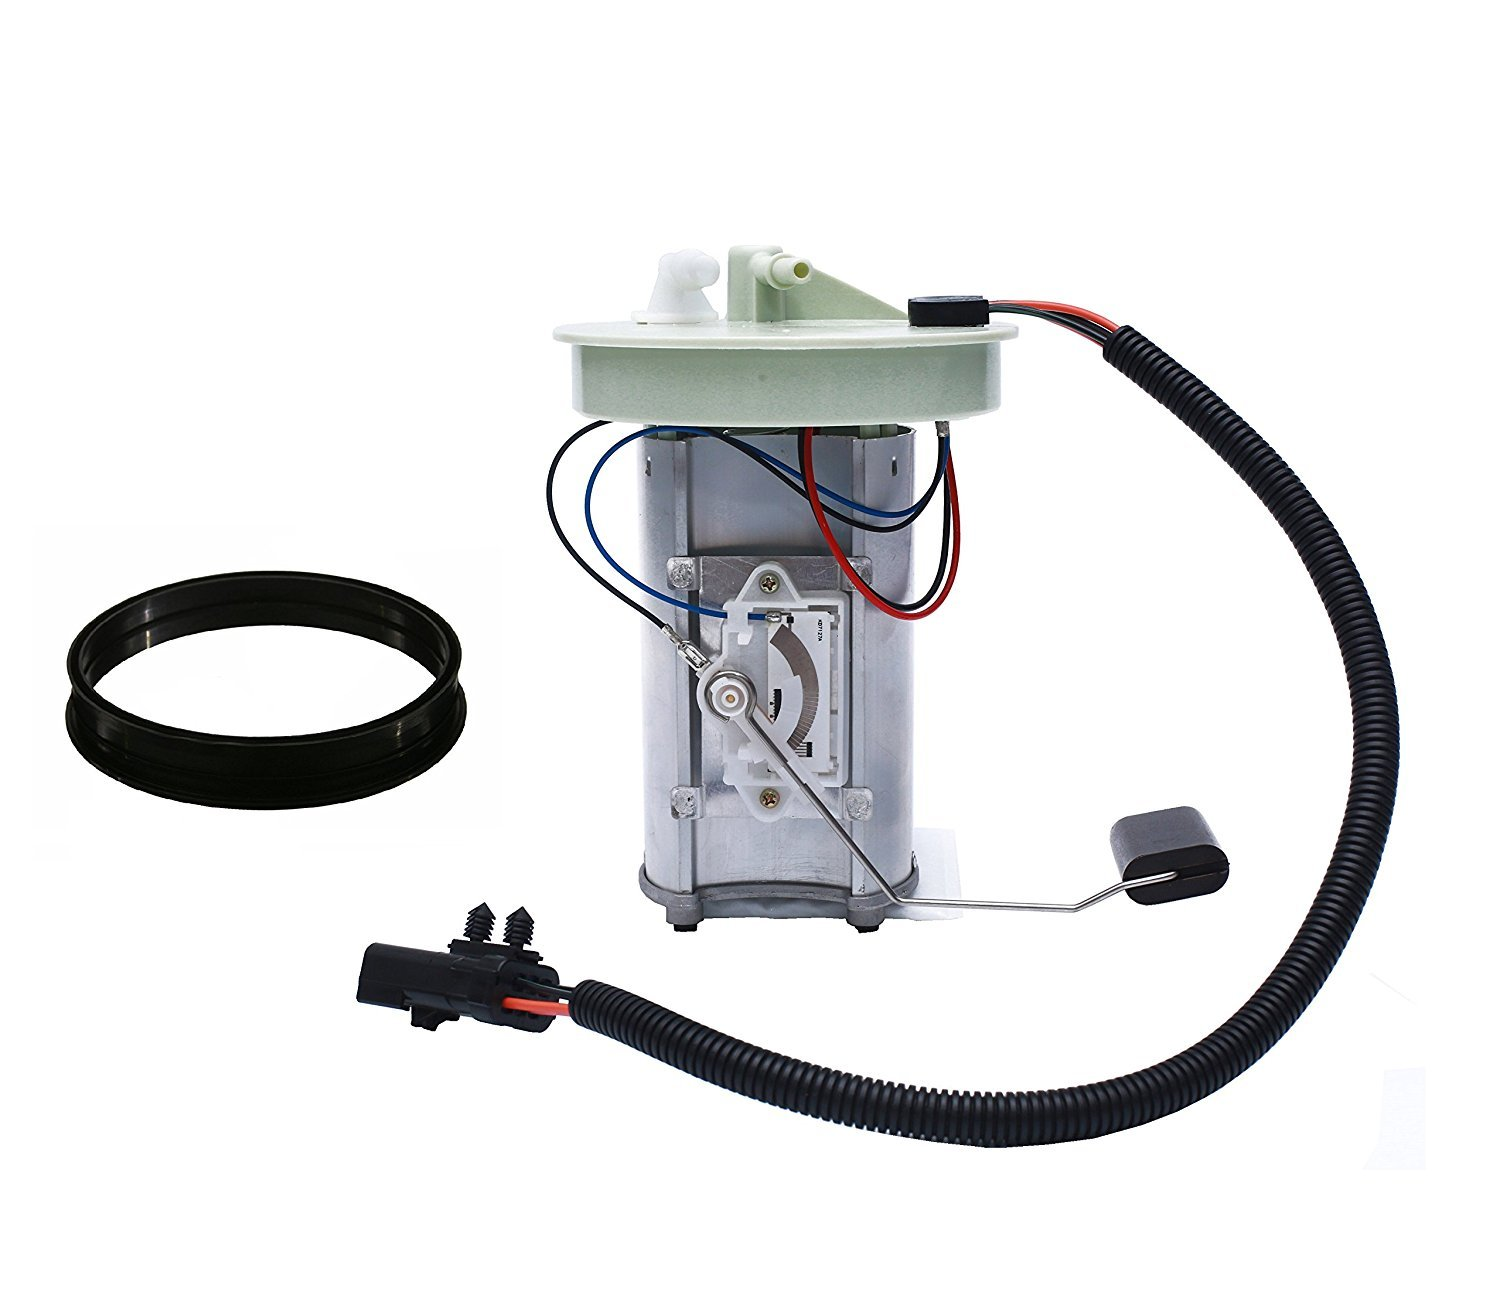 Amazon.com: Fuel Pump Module Assembly E7127MN Fits 1999 2000 2001 2002 2003 2004 Jeep Grand Cherokee TOPSCOPE FP67662M: Automotive